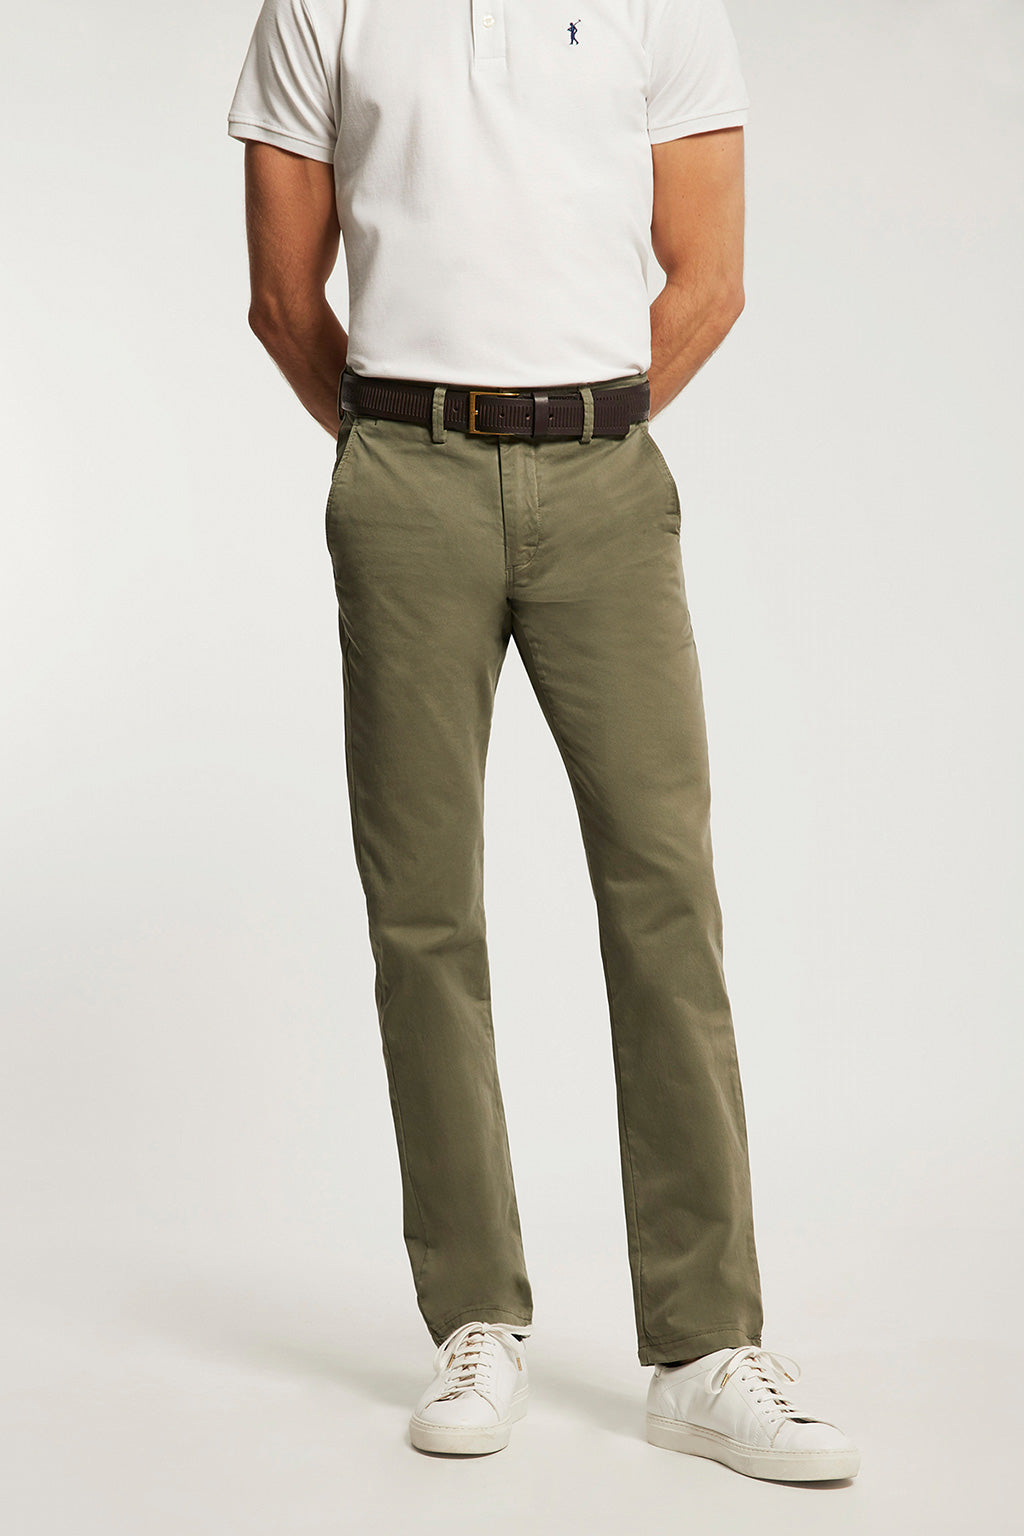 Pantalón Custom Fit Khaki